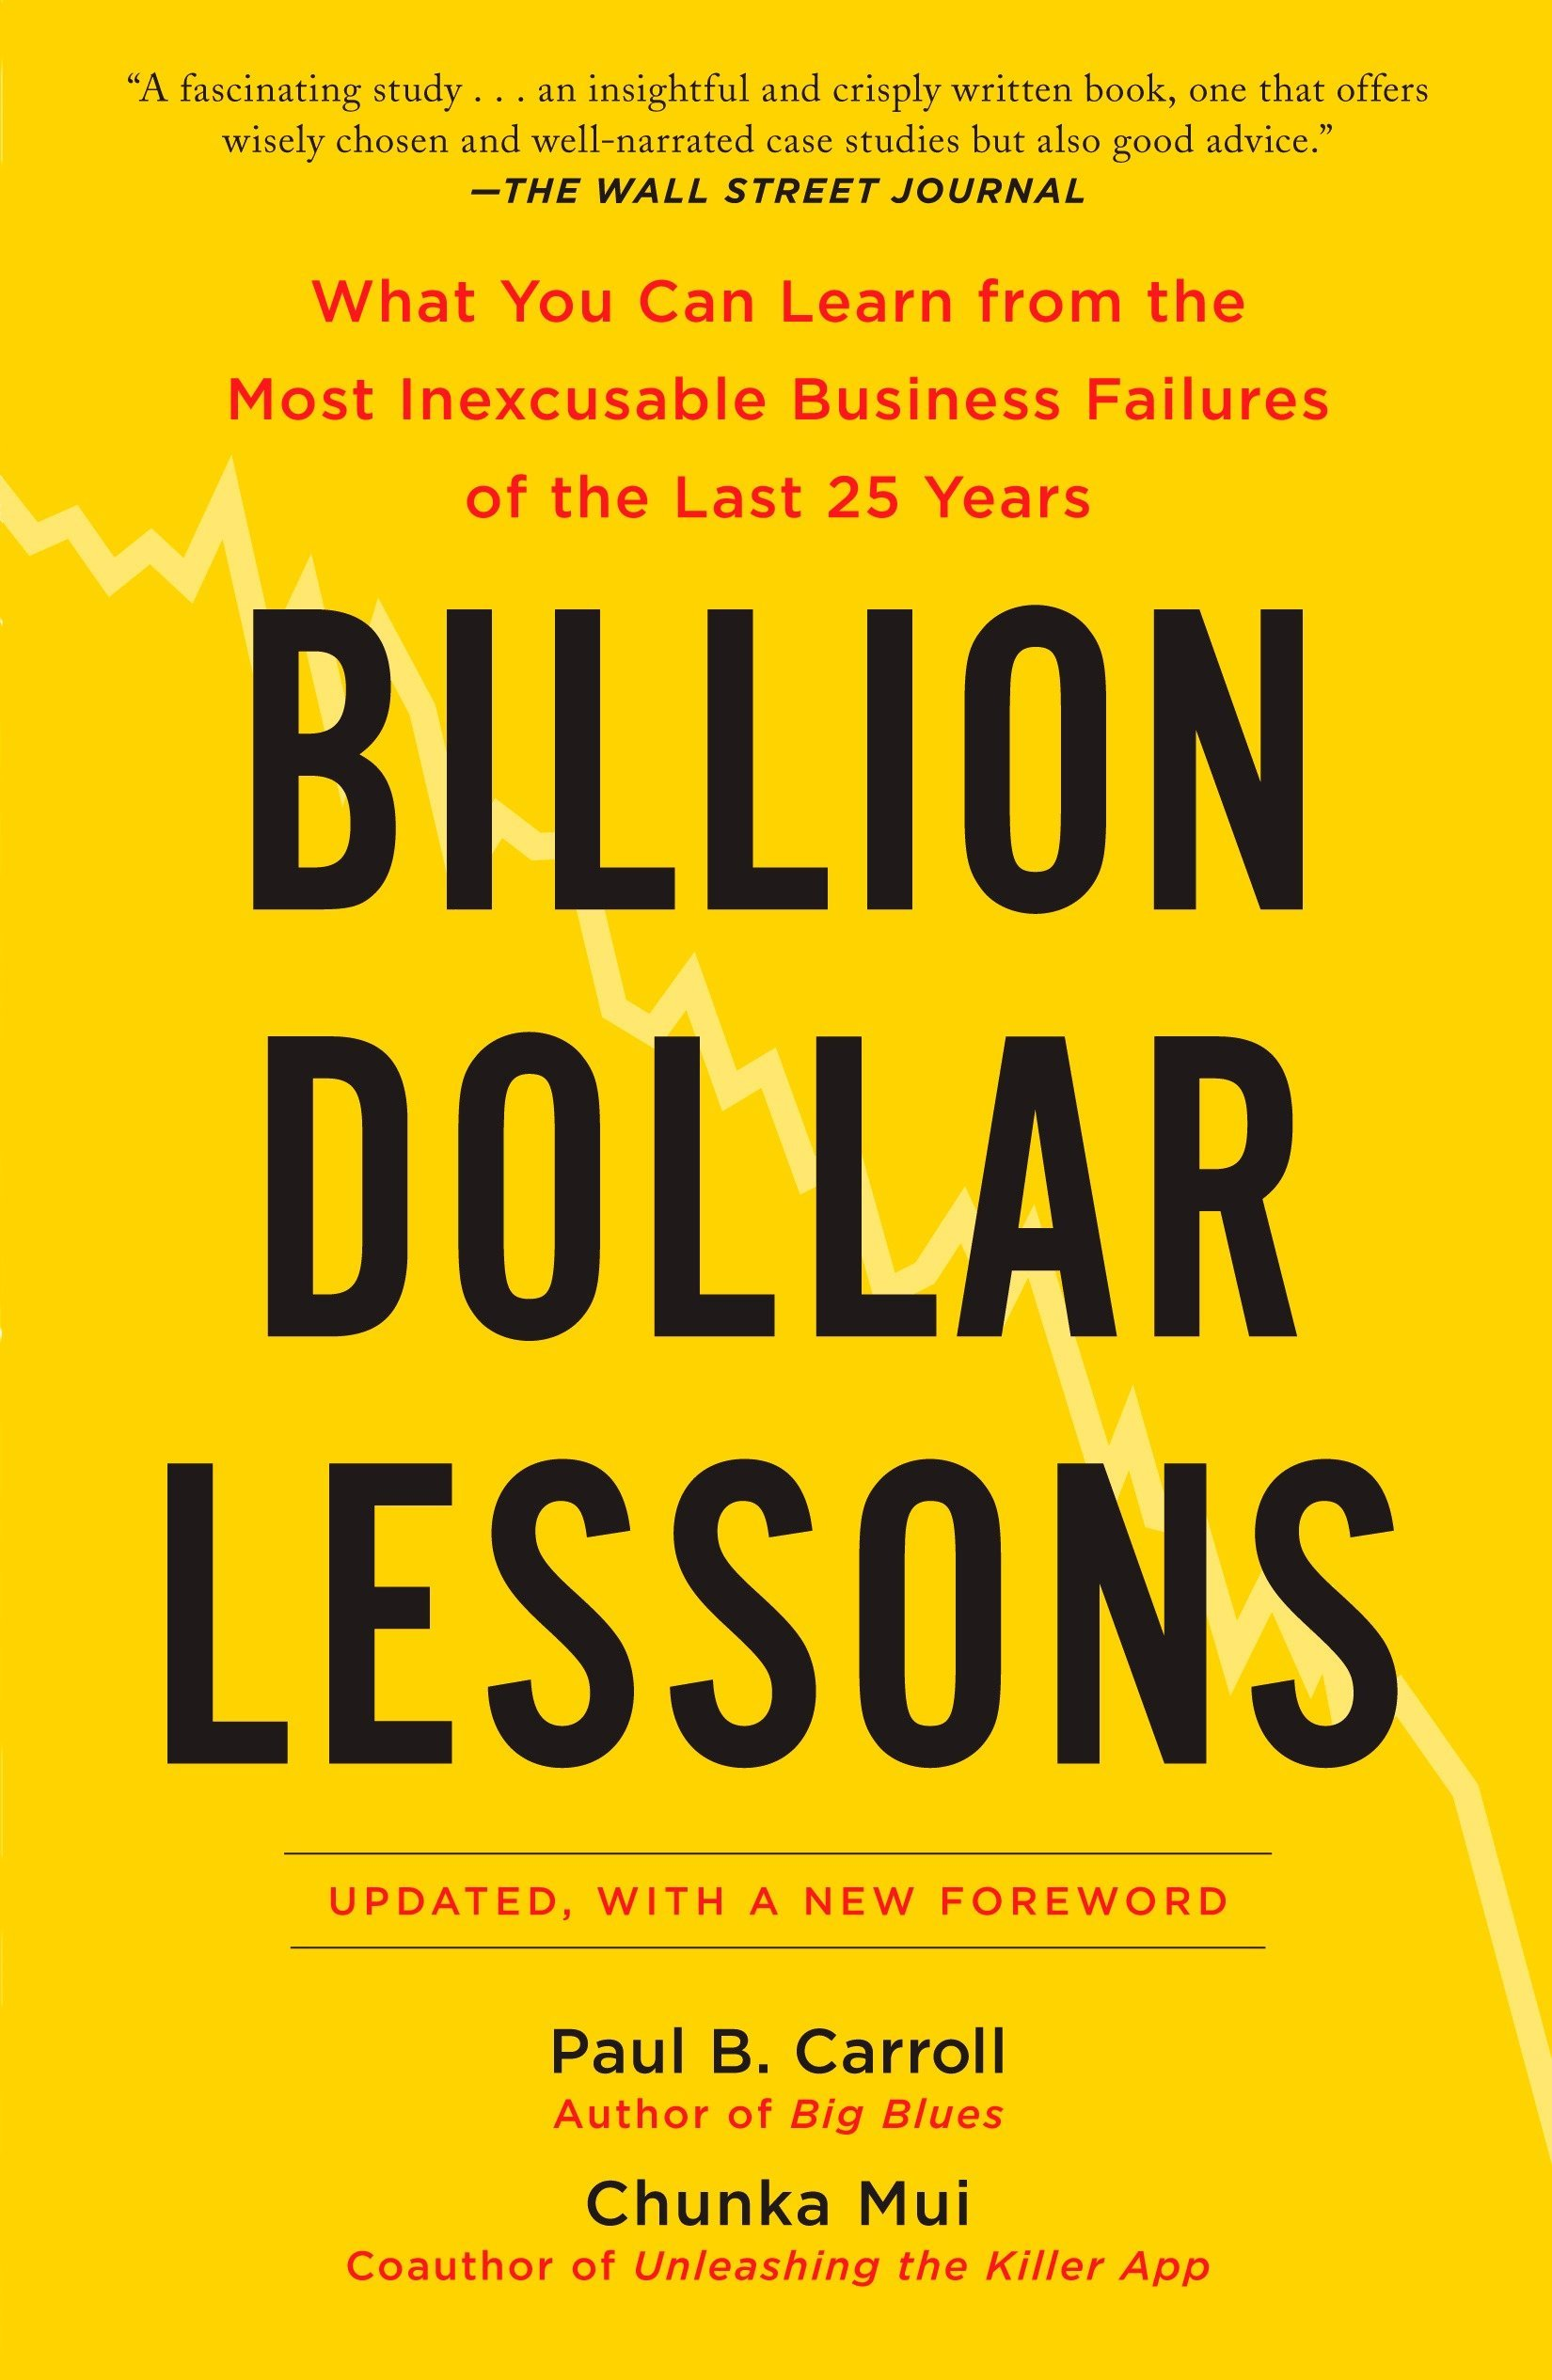 billion dollar lessons what you can learn from the most inexcusable business failures of the last 25 years